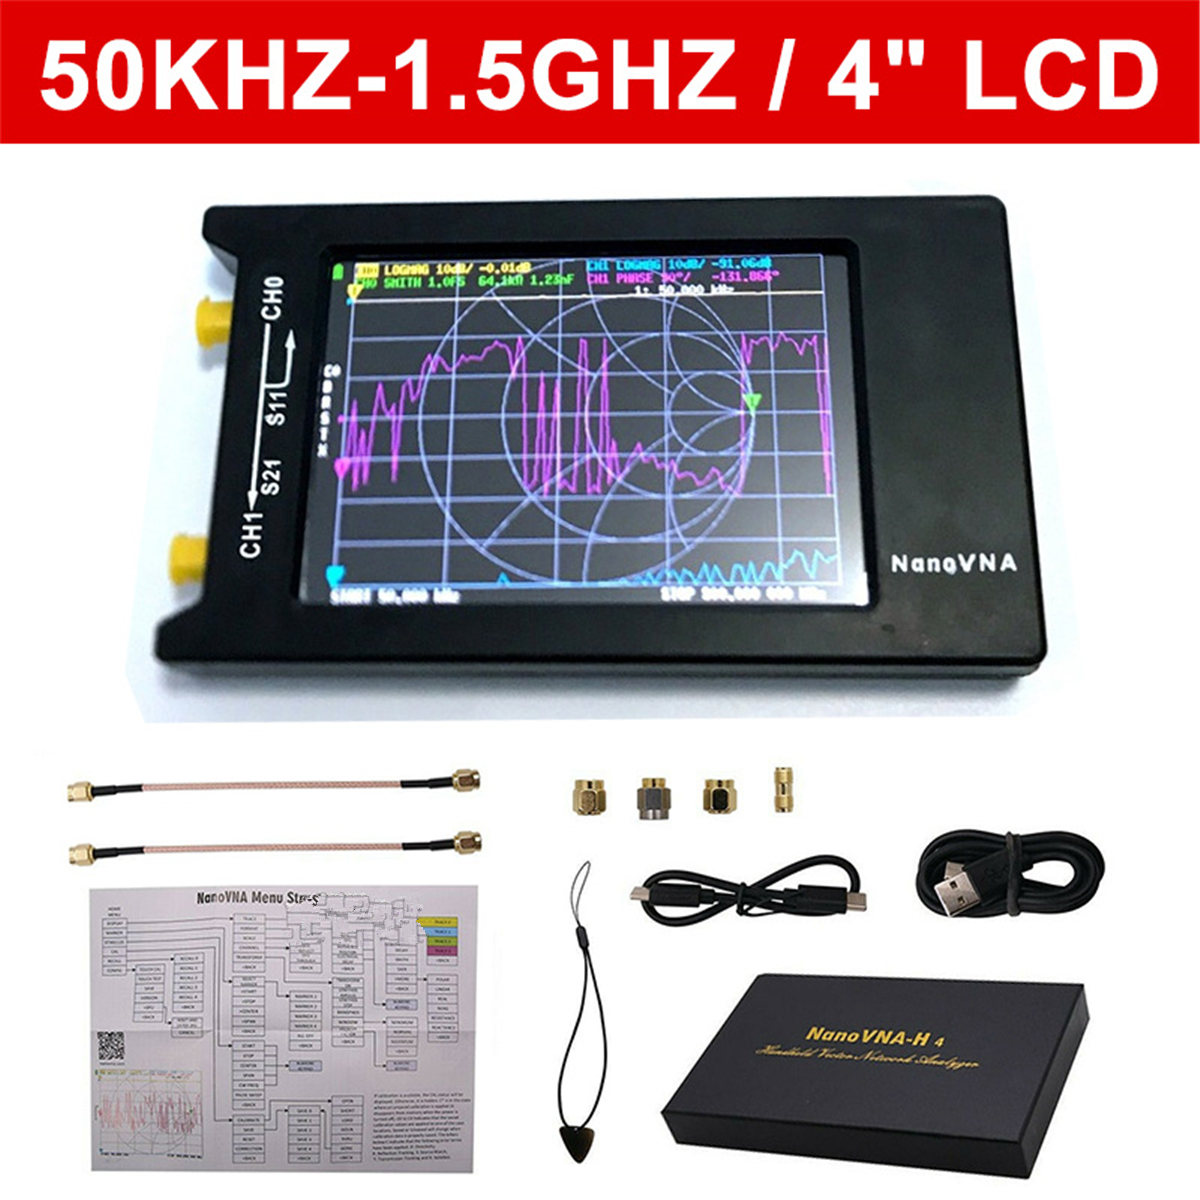 For NanoVNA-H4 4 Inch LCD VNA HF VHF UHF UV Vector Network Analyzer 50KHz-1.5GHz Antenna Analyzer Built-in Battery